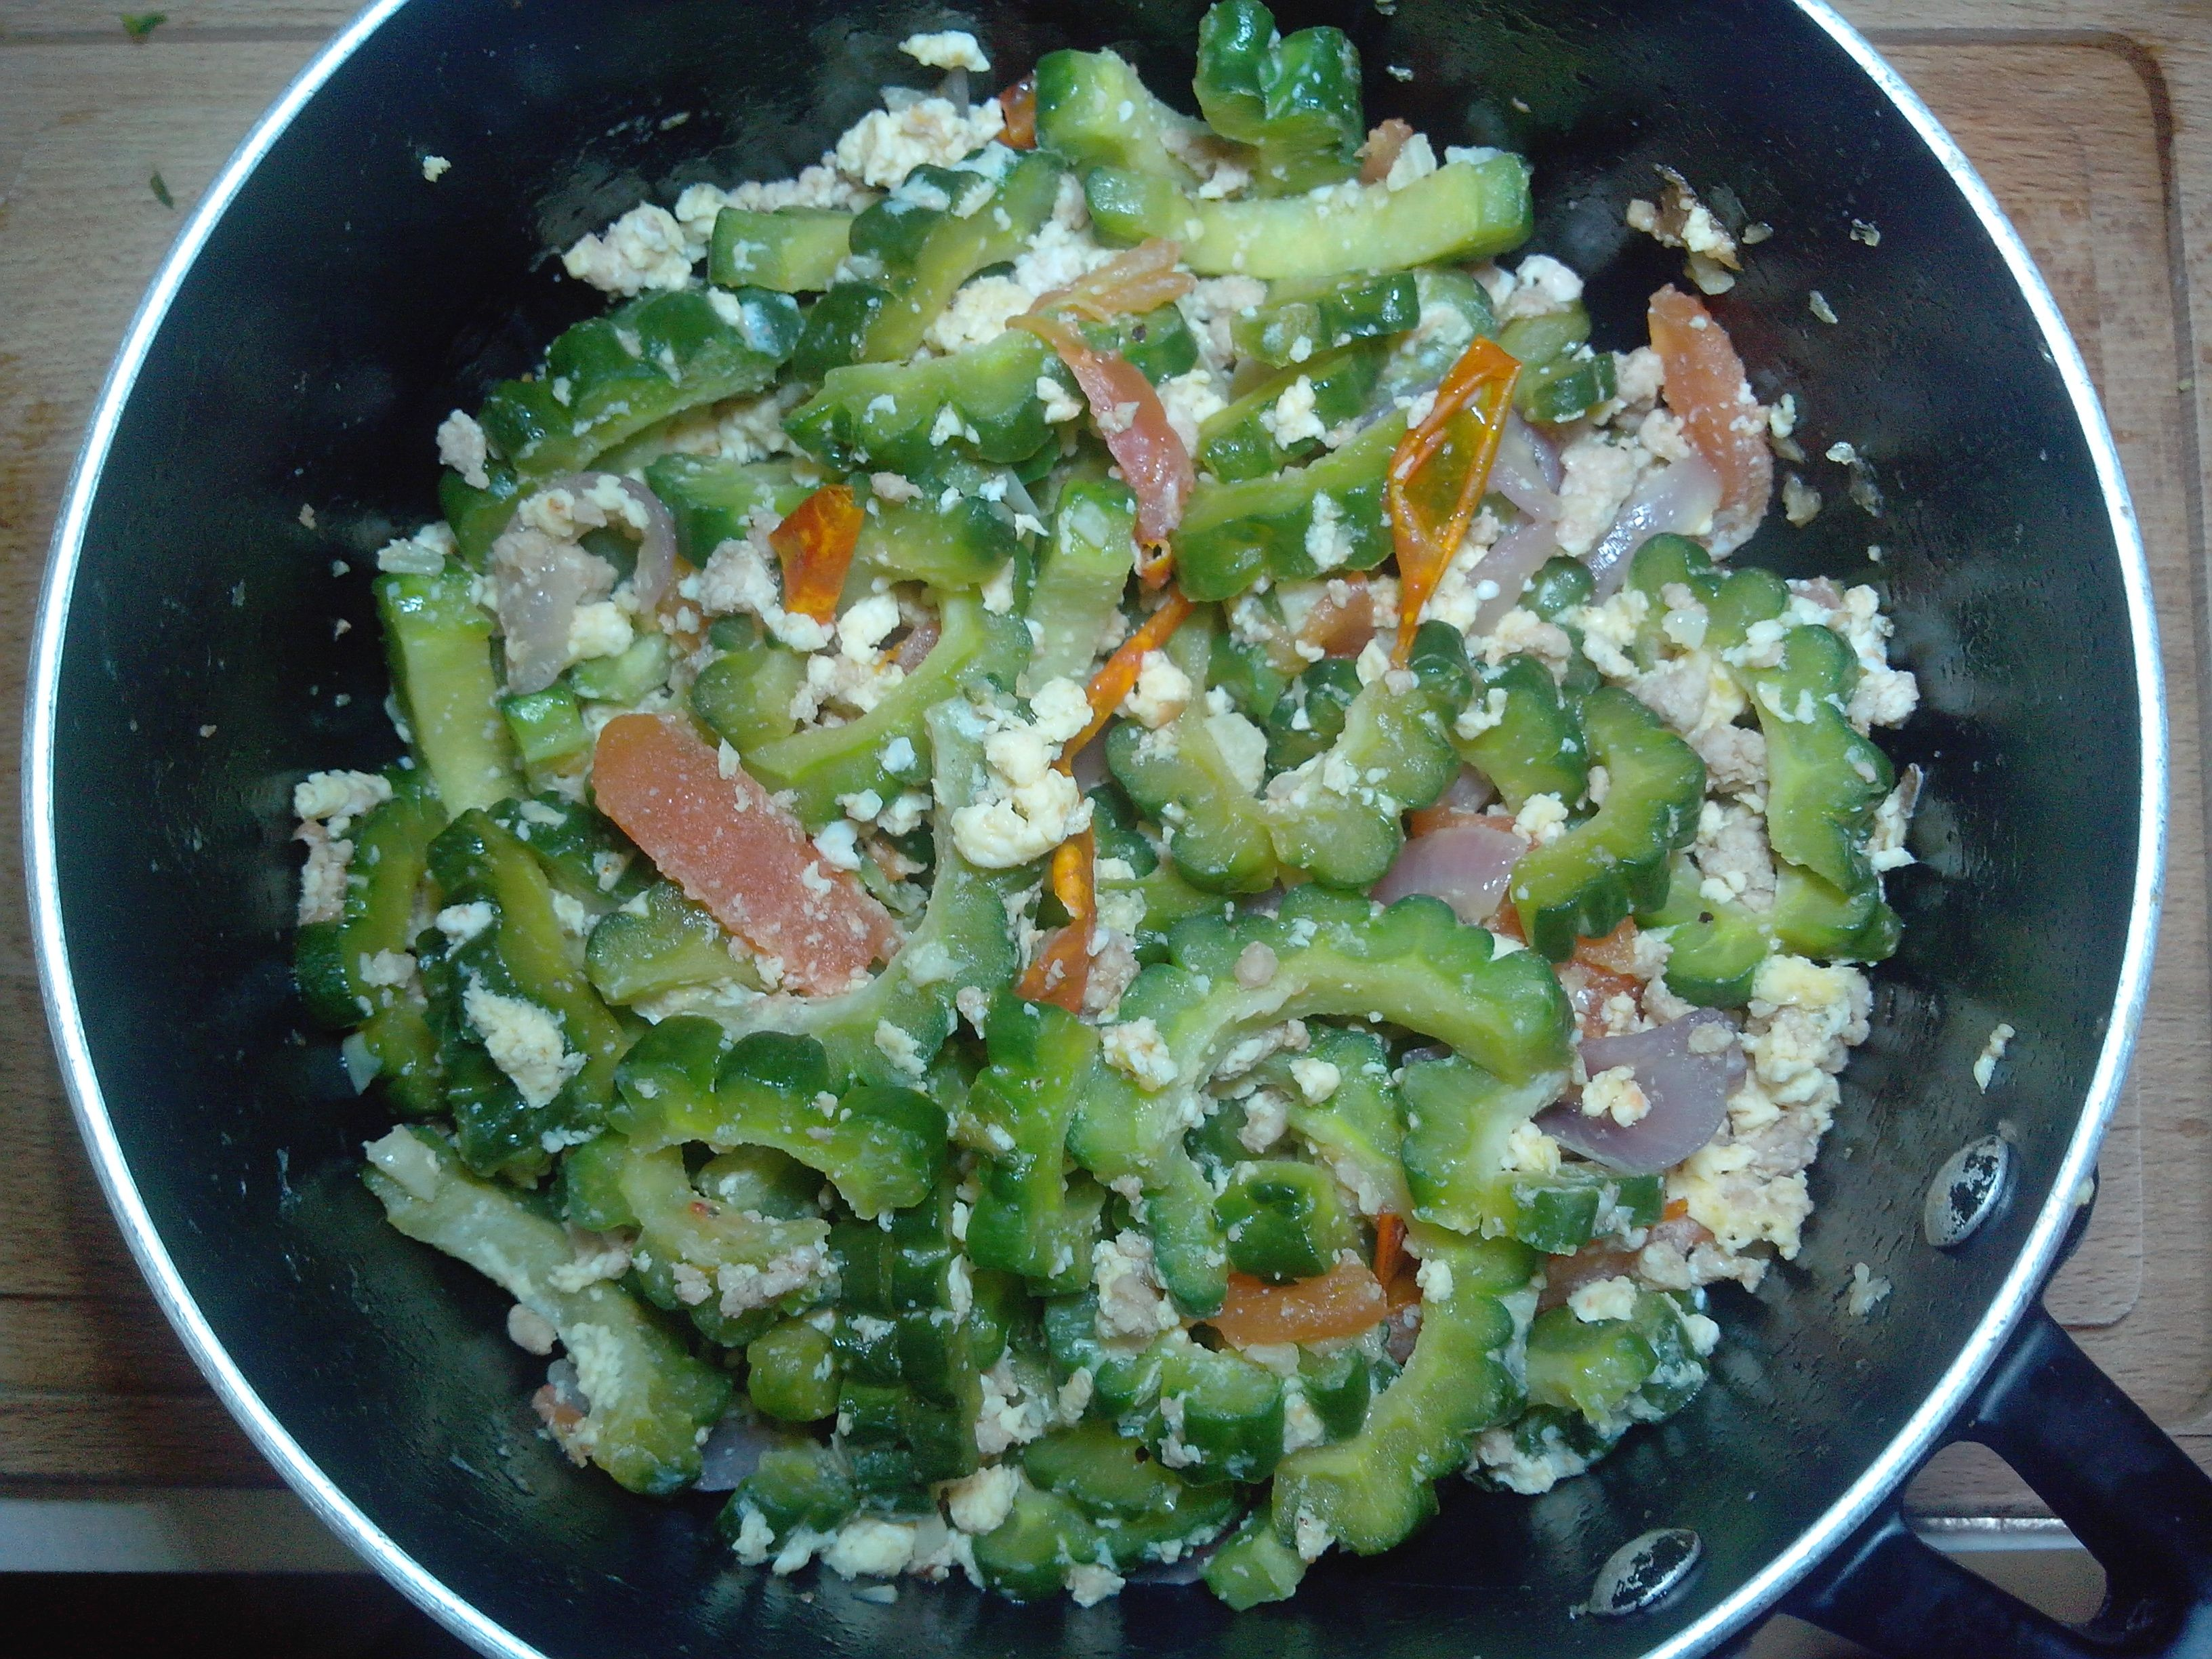 Vegetable for today's dinner. ♥  http://icookeat2.com/ginisang-ampalaya-sauteed-bitter-melon/ #icookeat2